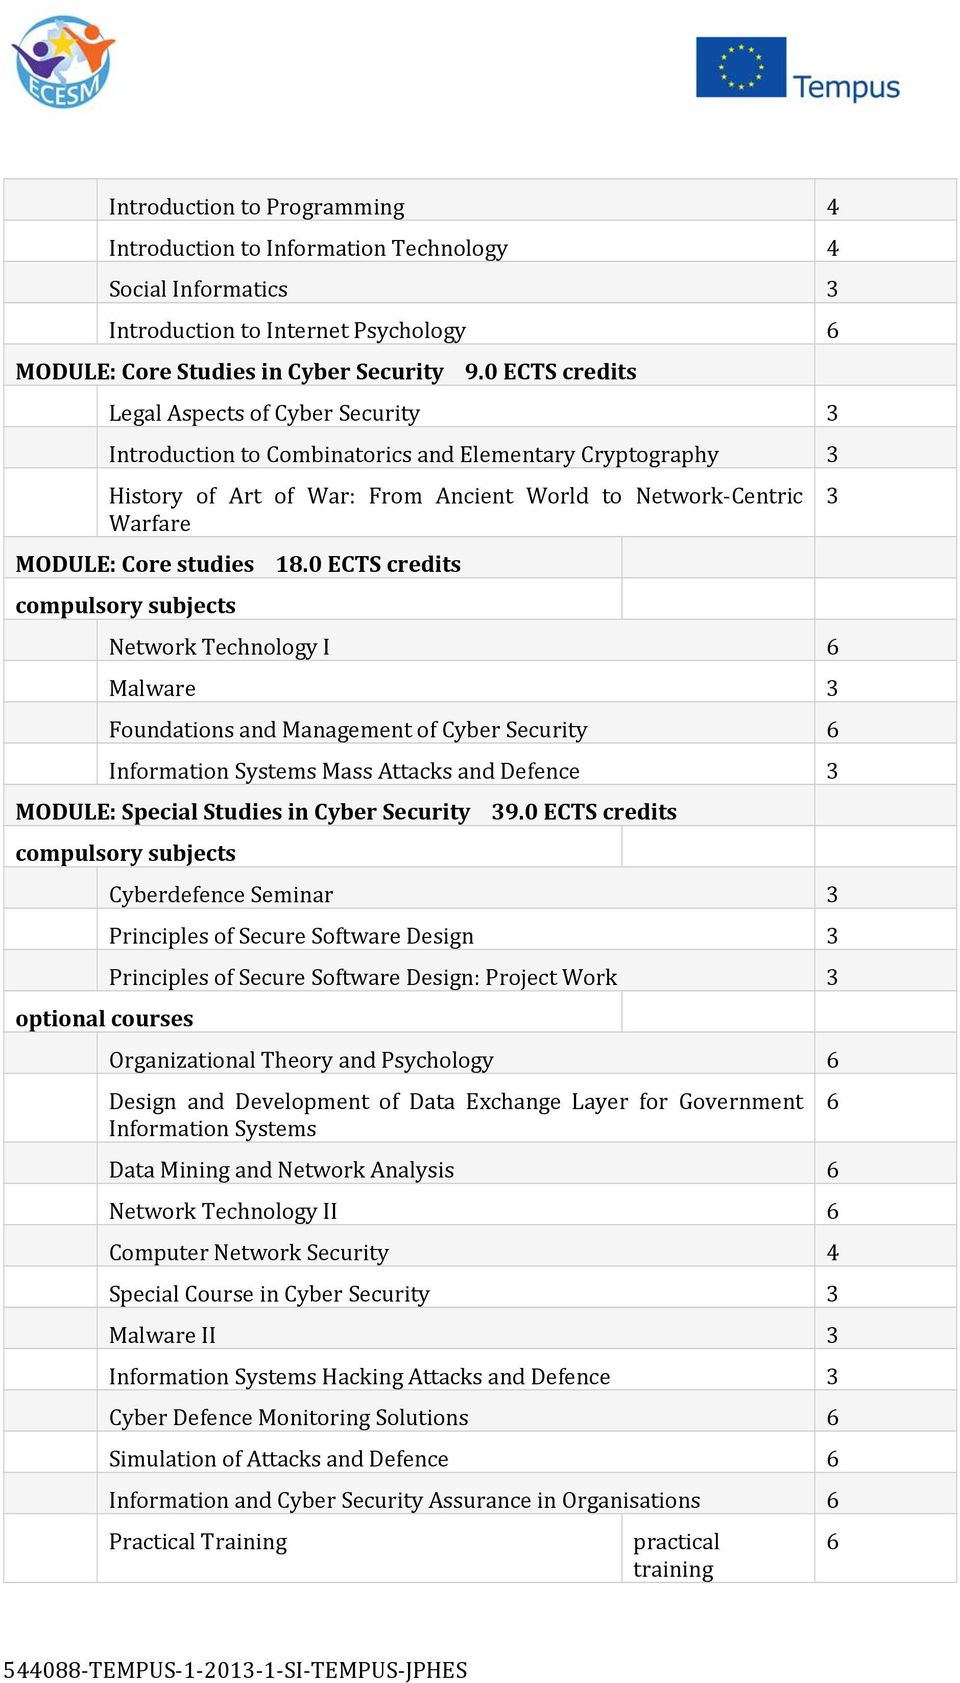 18.0 ECTS credits compulsory subjects Network Technology I 6 Malware 3 Foundations and Management of Cyber Security 6 Information Systems Mass Attacks and Defence 3 MODULE: Special Studies in Cyber